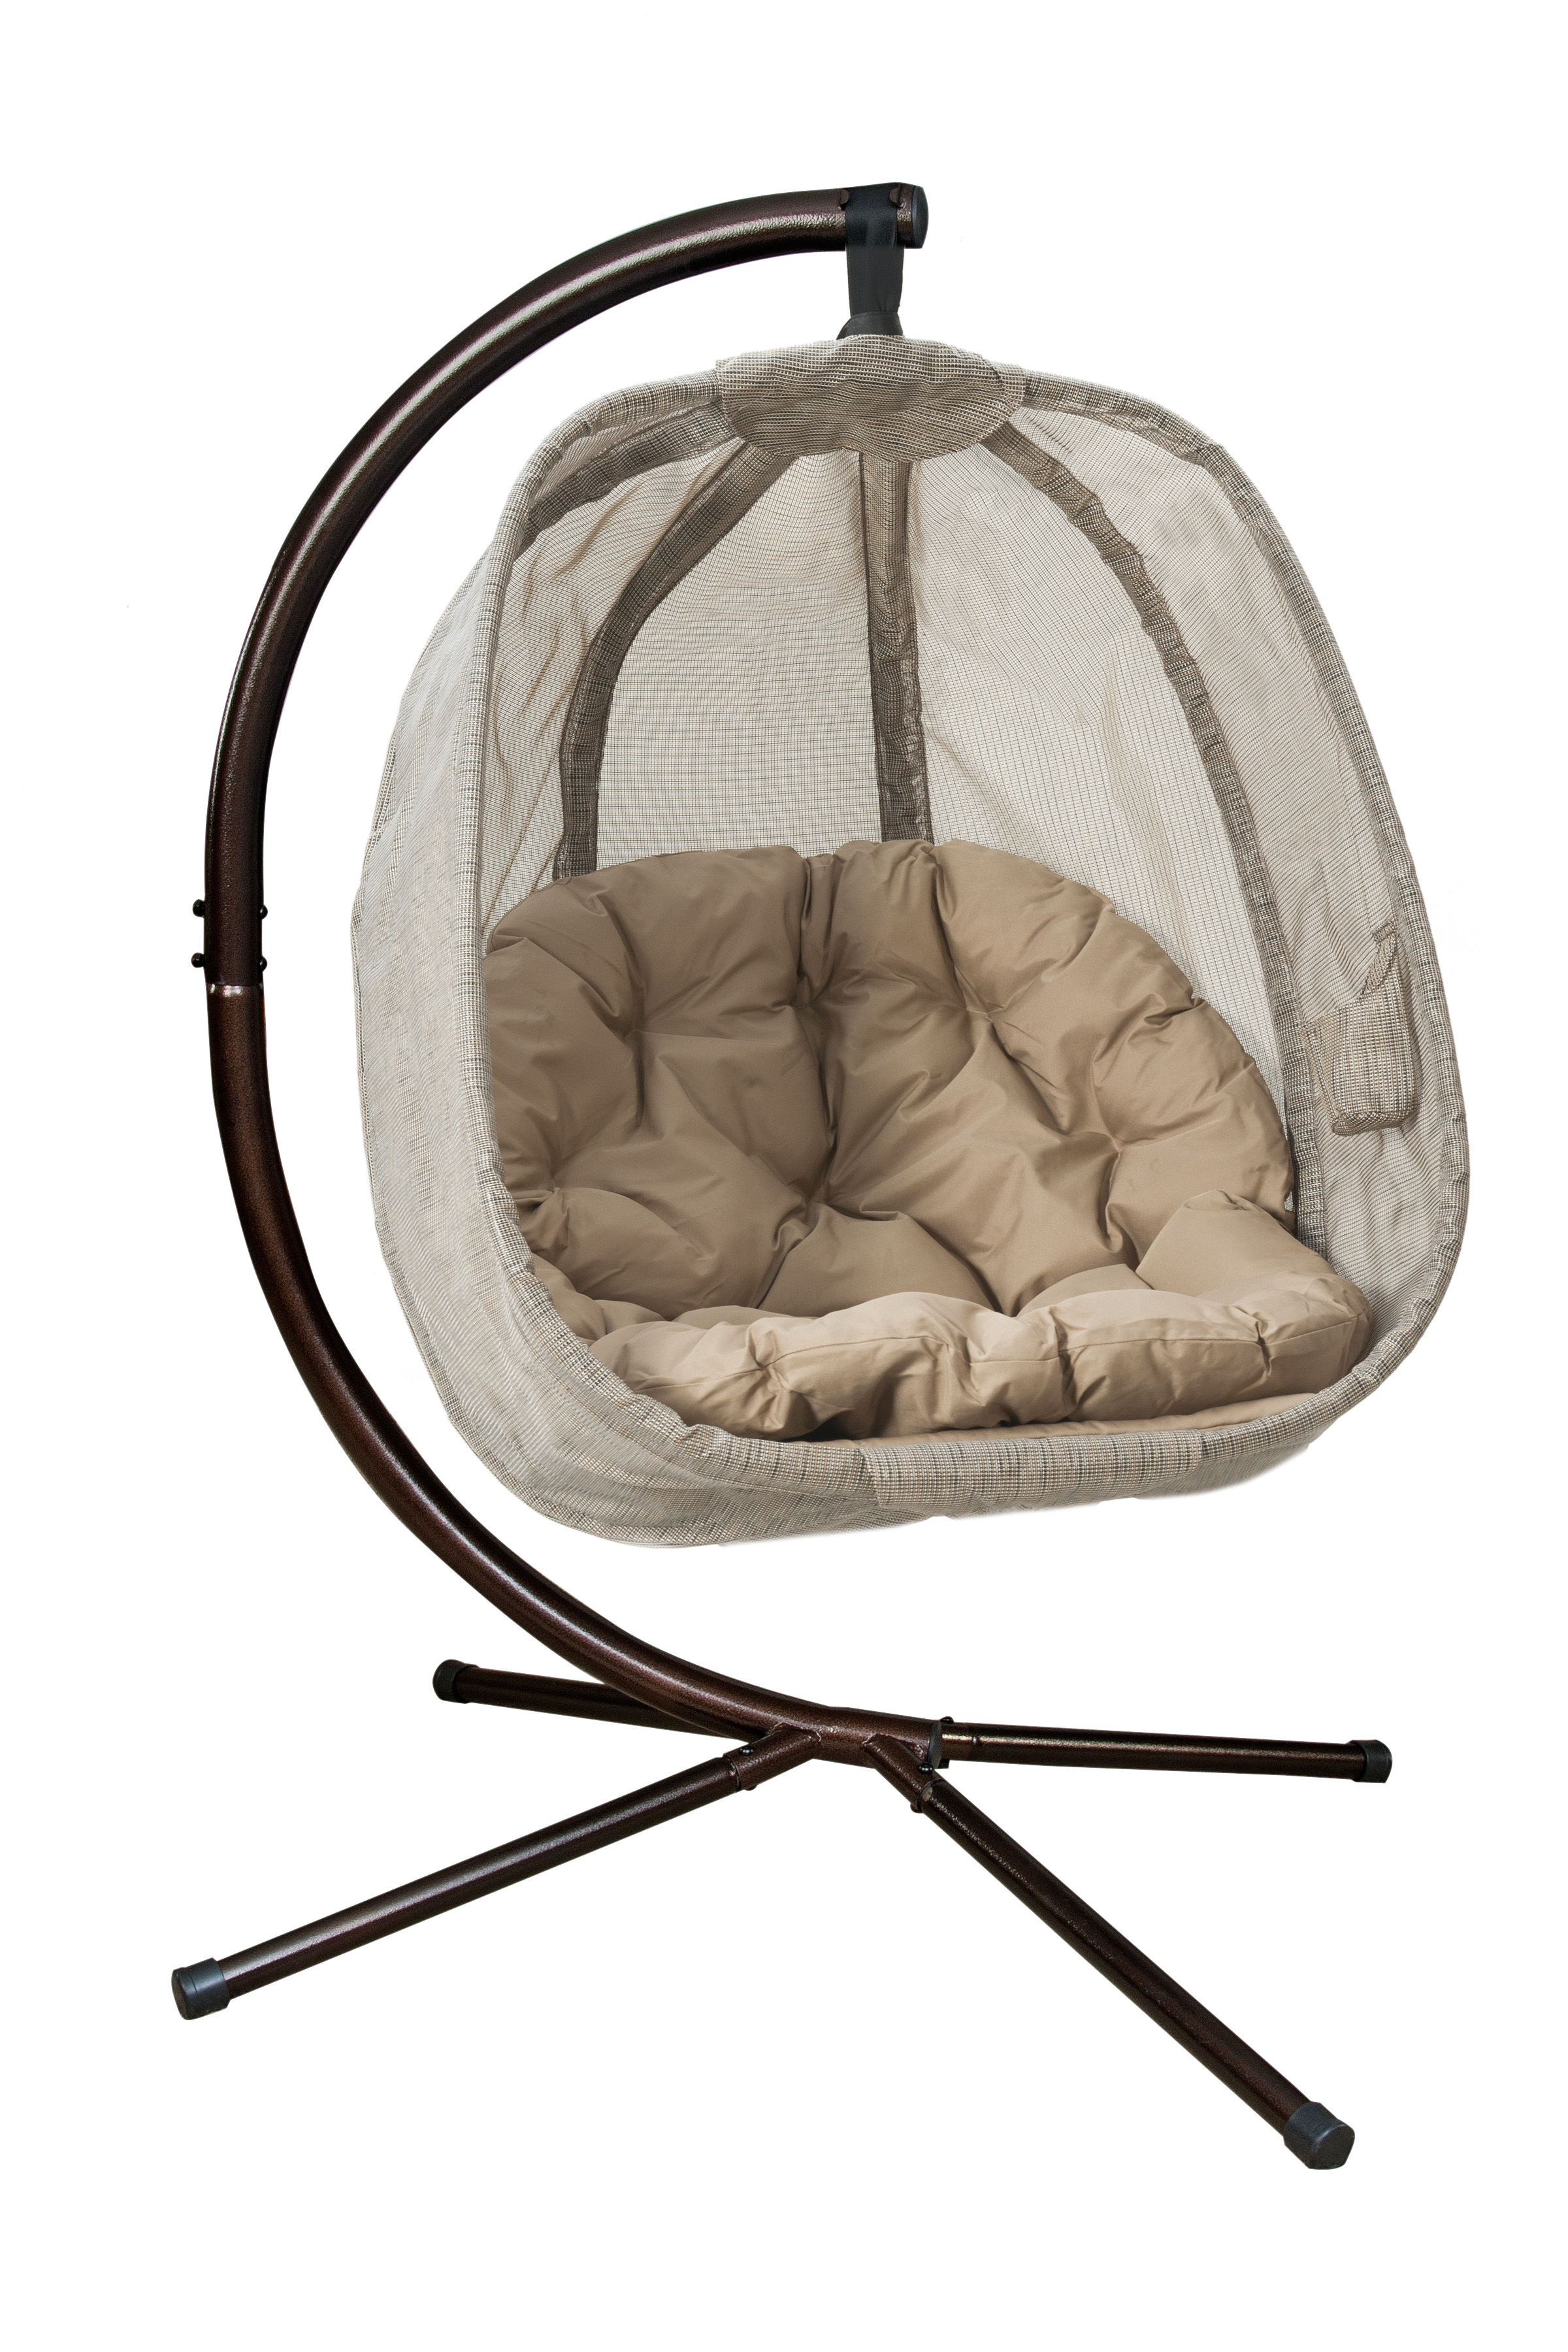 Hanging Egg Chair with Stand - Bark - FlowerHouse